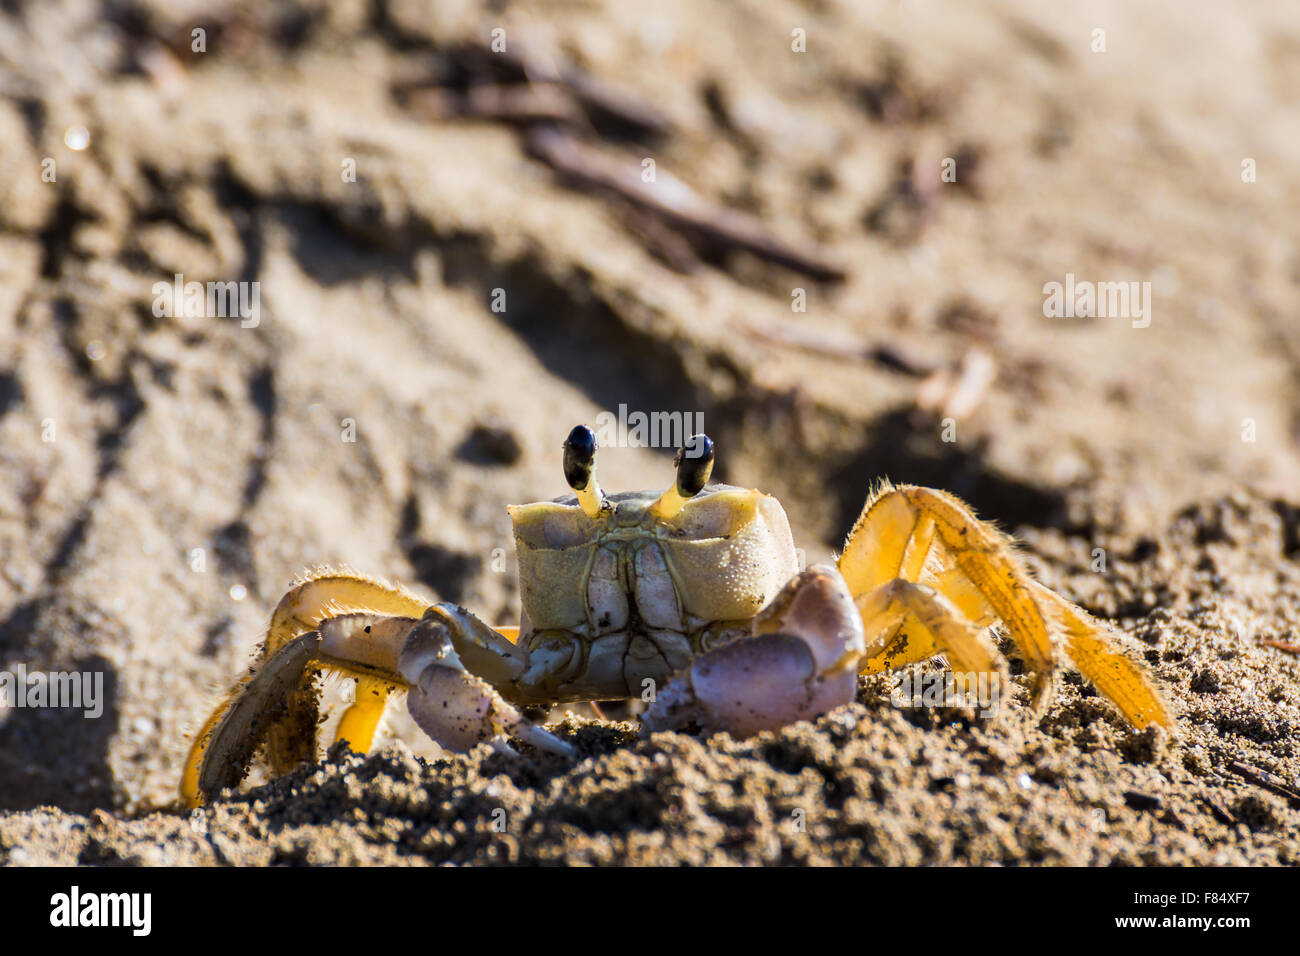 An adult sand crab next to its burrow at Playa Yaguanabo scans the beach for food as the sun rises behind him. - Stock Image